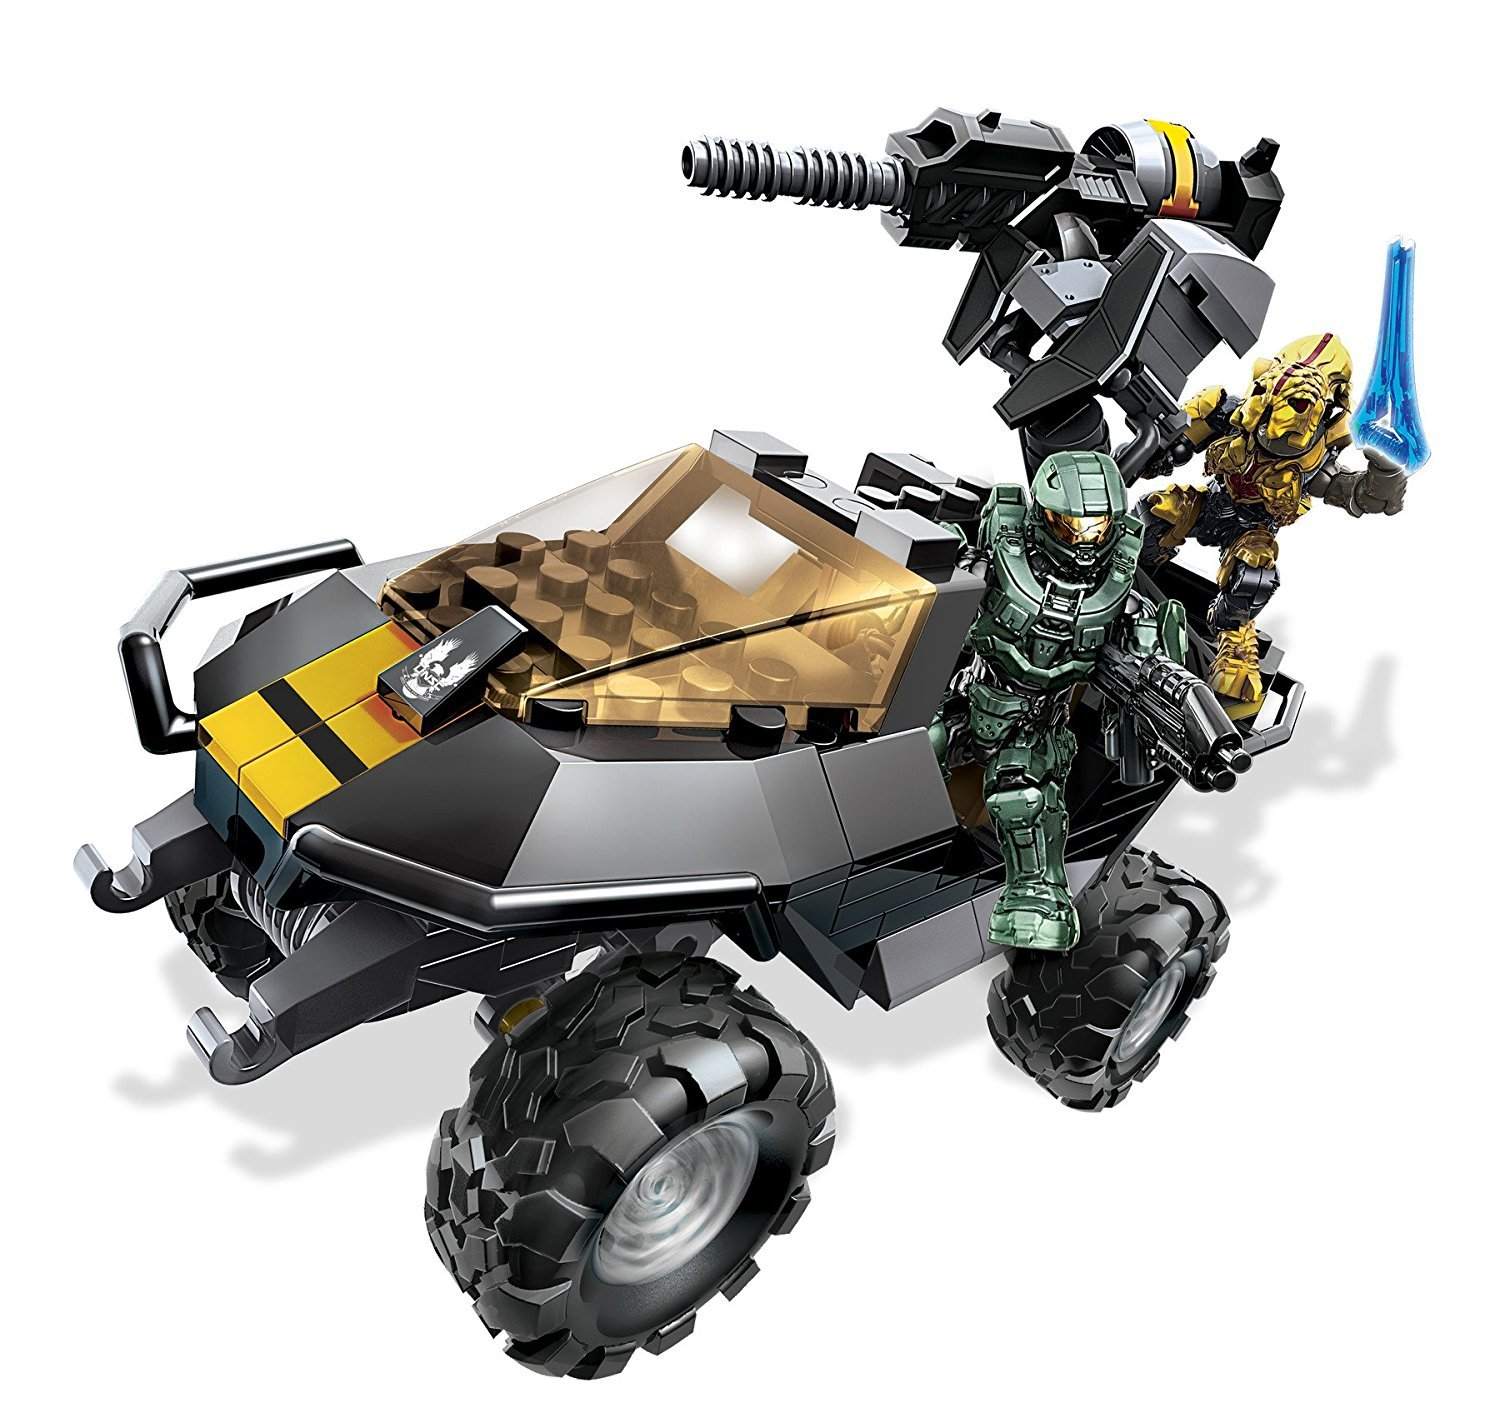 Lego Halo Toys : Halo lego toys pixshark images galleries with